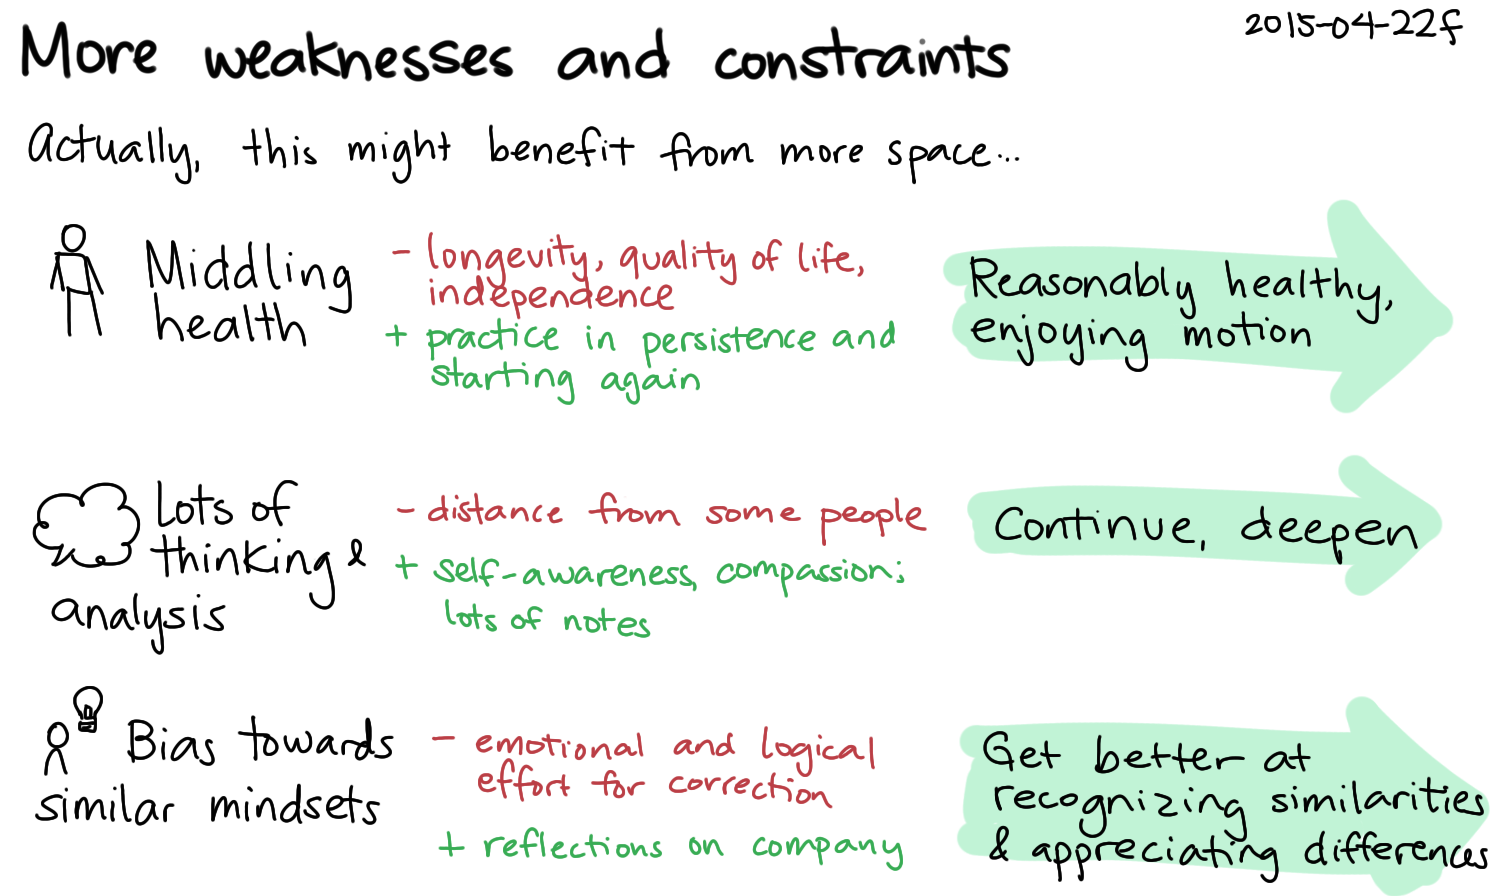 2015-04-22f More weaknesses and constraints -- index card #weaknesses.png